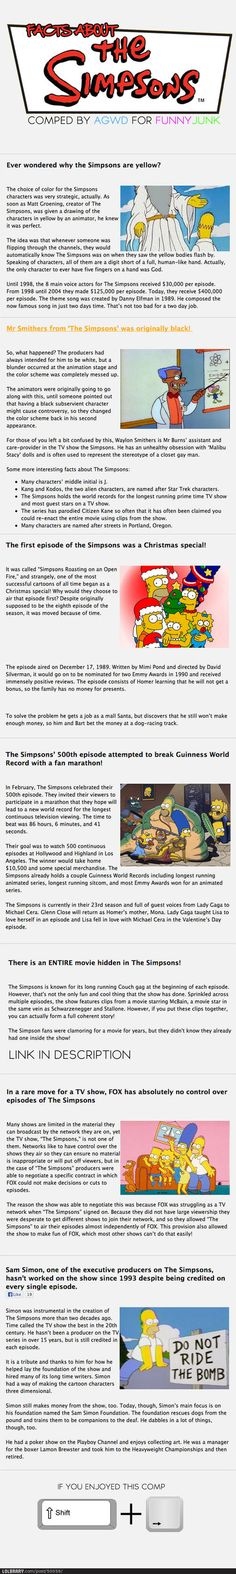 Simpsons Facts | LOLBRARY.COM on imgfave